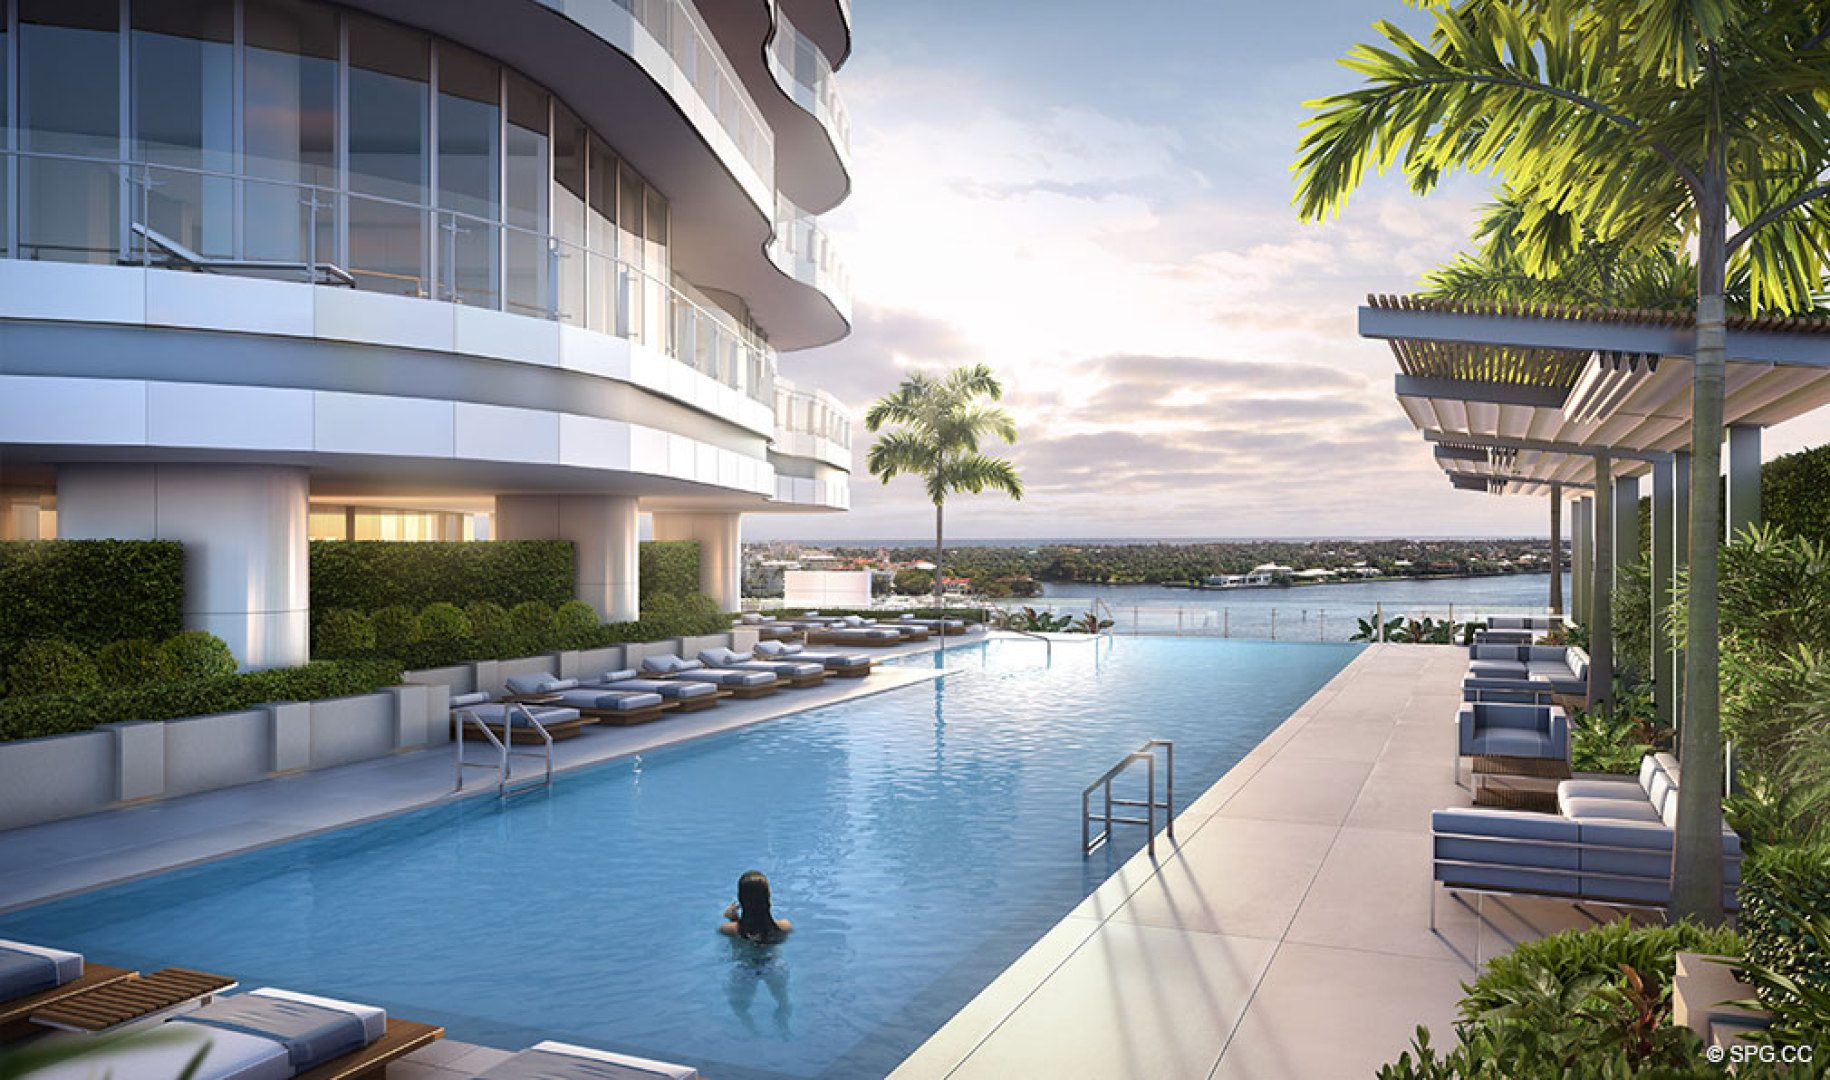 Pool Area at The Bristol, Luxury Waterfront Condos in West Palm Beach, Florida 33401